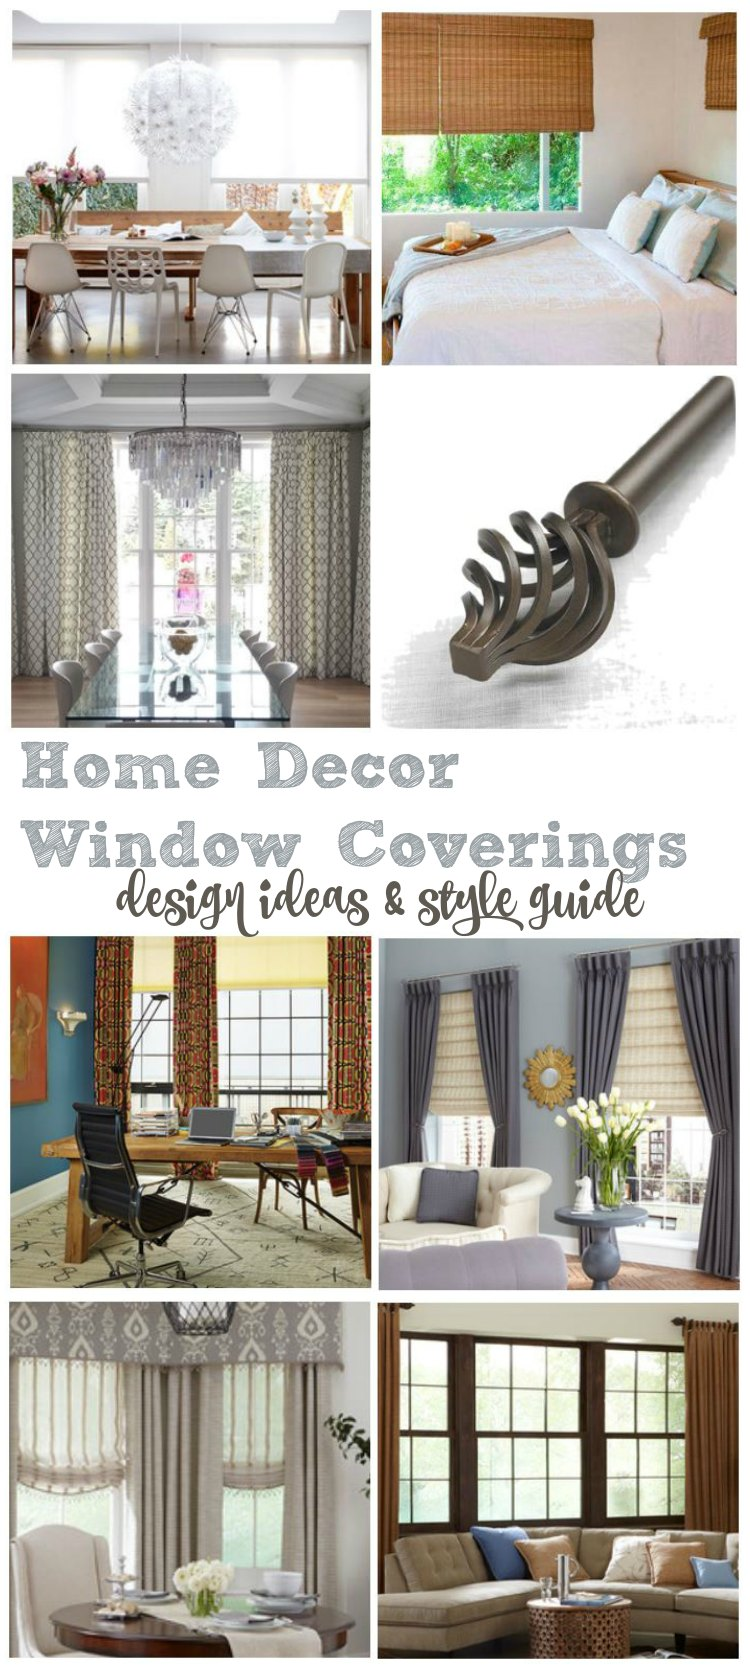 Home Decor Window Coverings Design Ideas & Style Guide